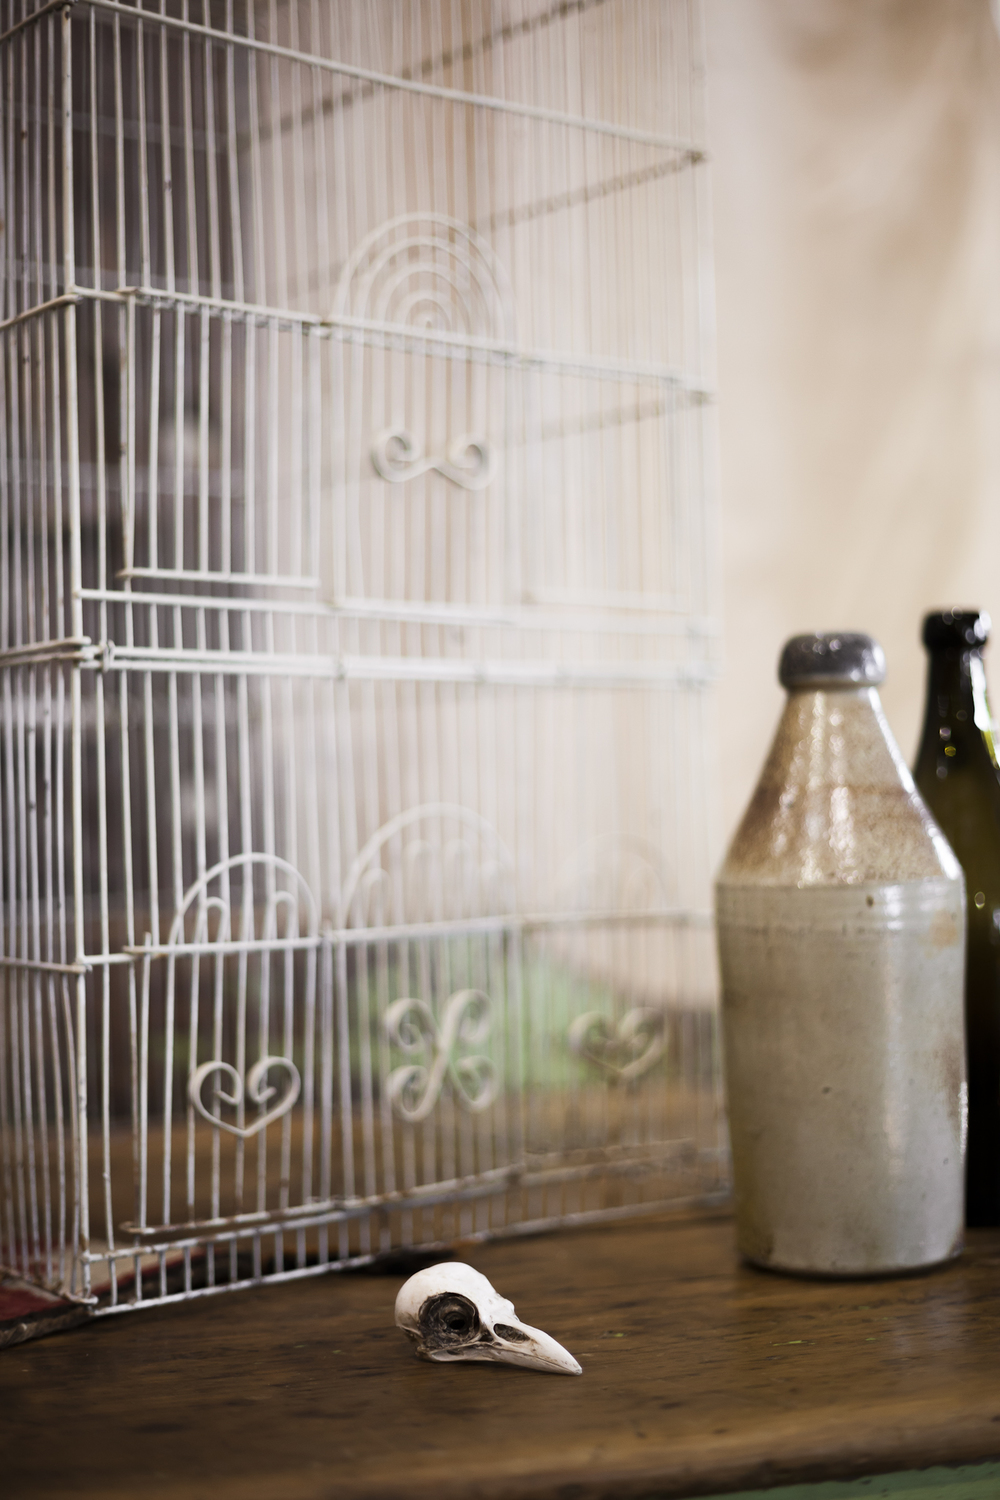 Antique Birdcage, Crow Skull, and Milk Bottles on a Distressed Table